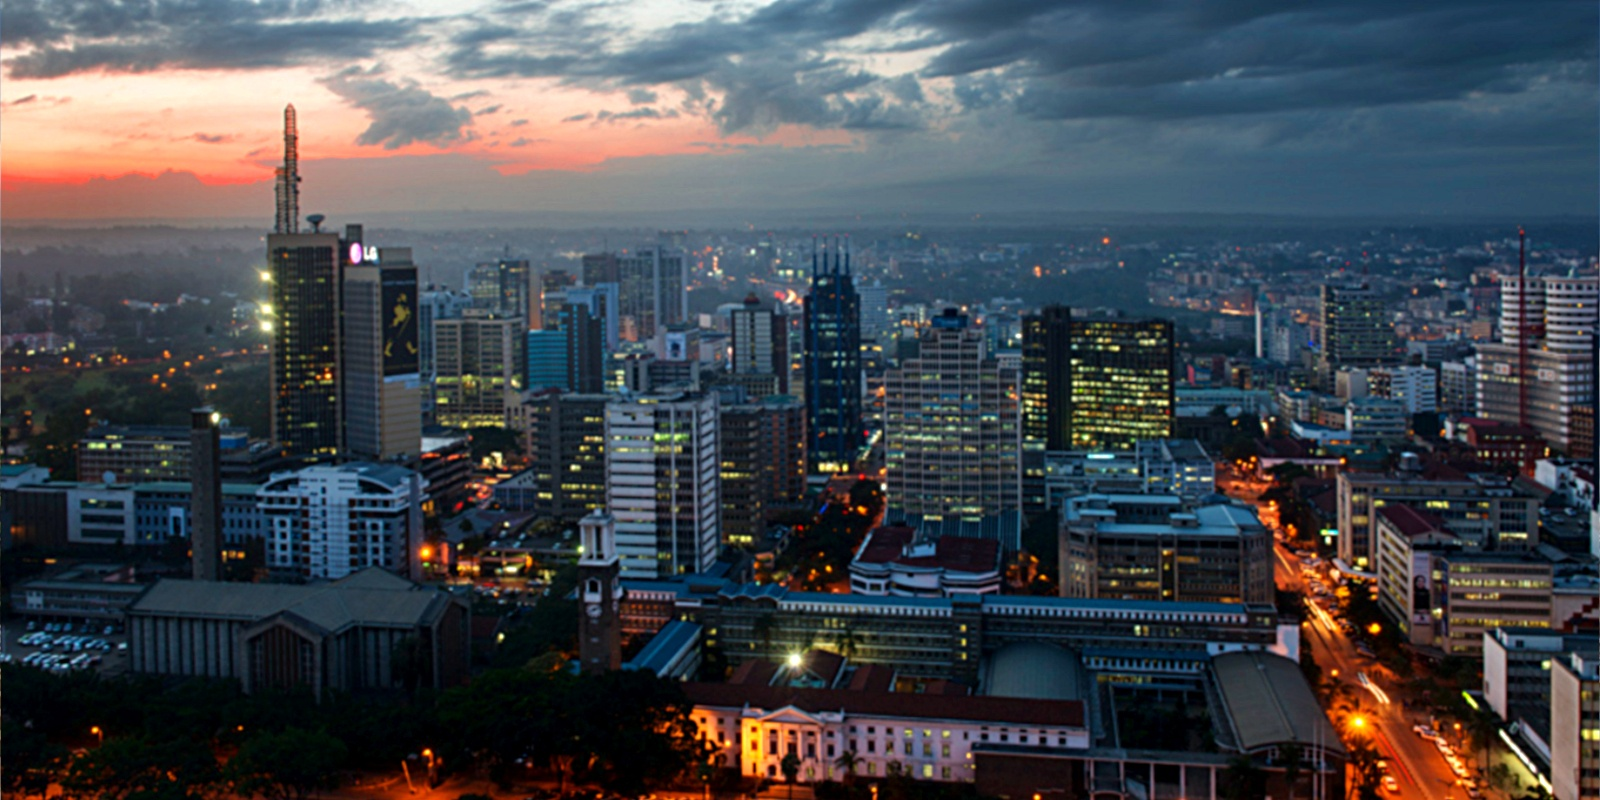 The concrete jungle of Downtown Nairobi at dusk.